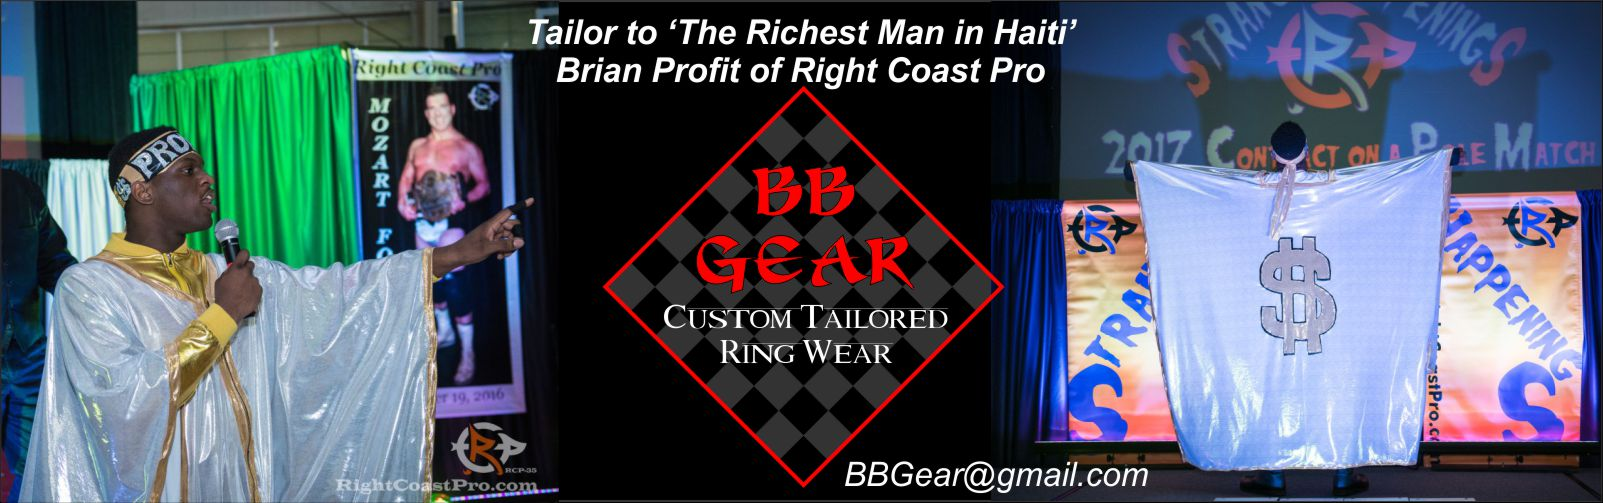 BBGear Profit ProWrestling Costumes RCP 1